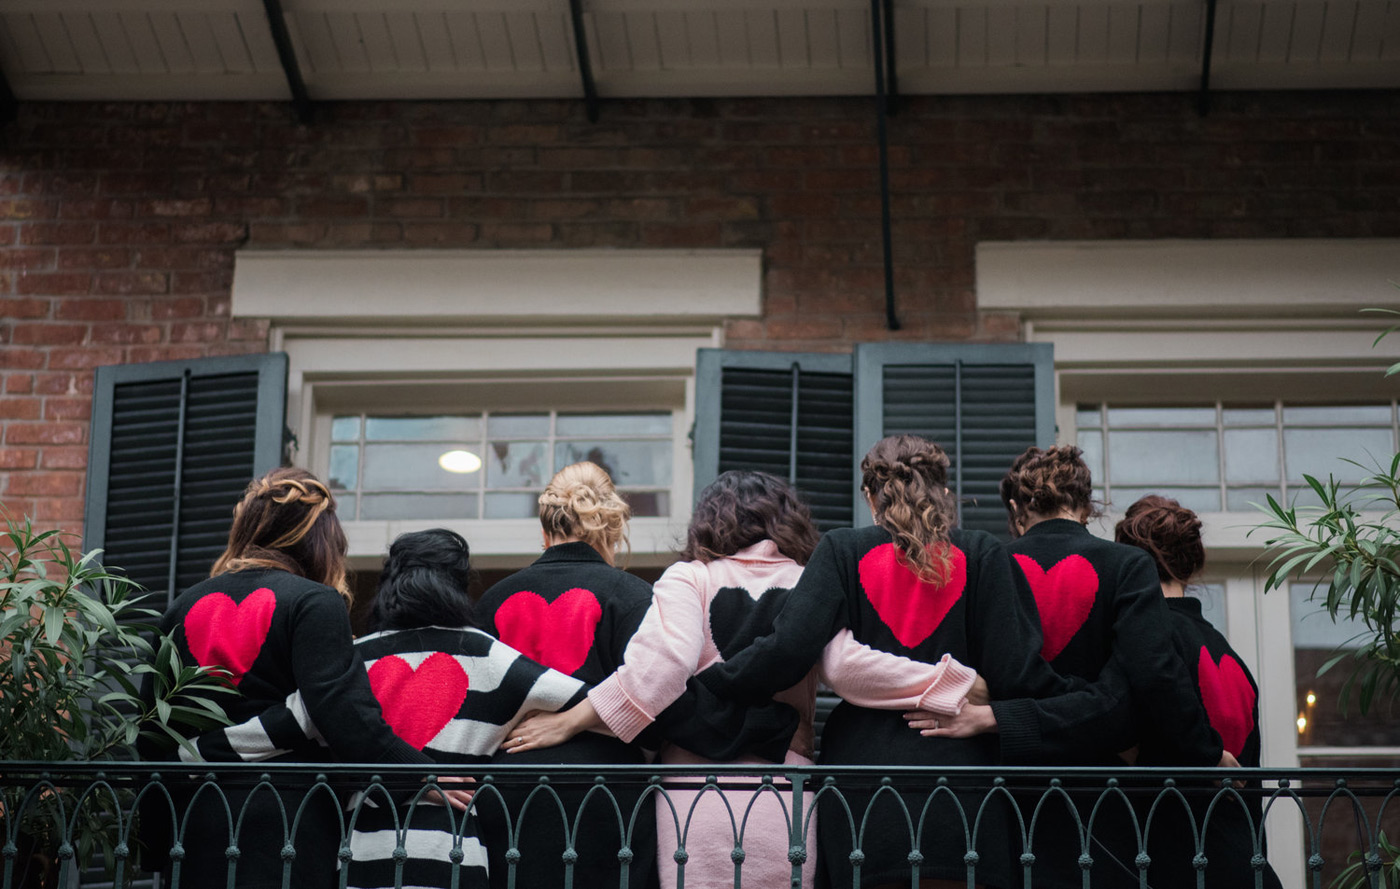 Bride and Bridesmaids on a balcony holding each other with red hearts on the back of their robes